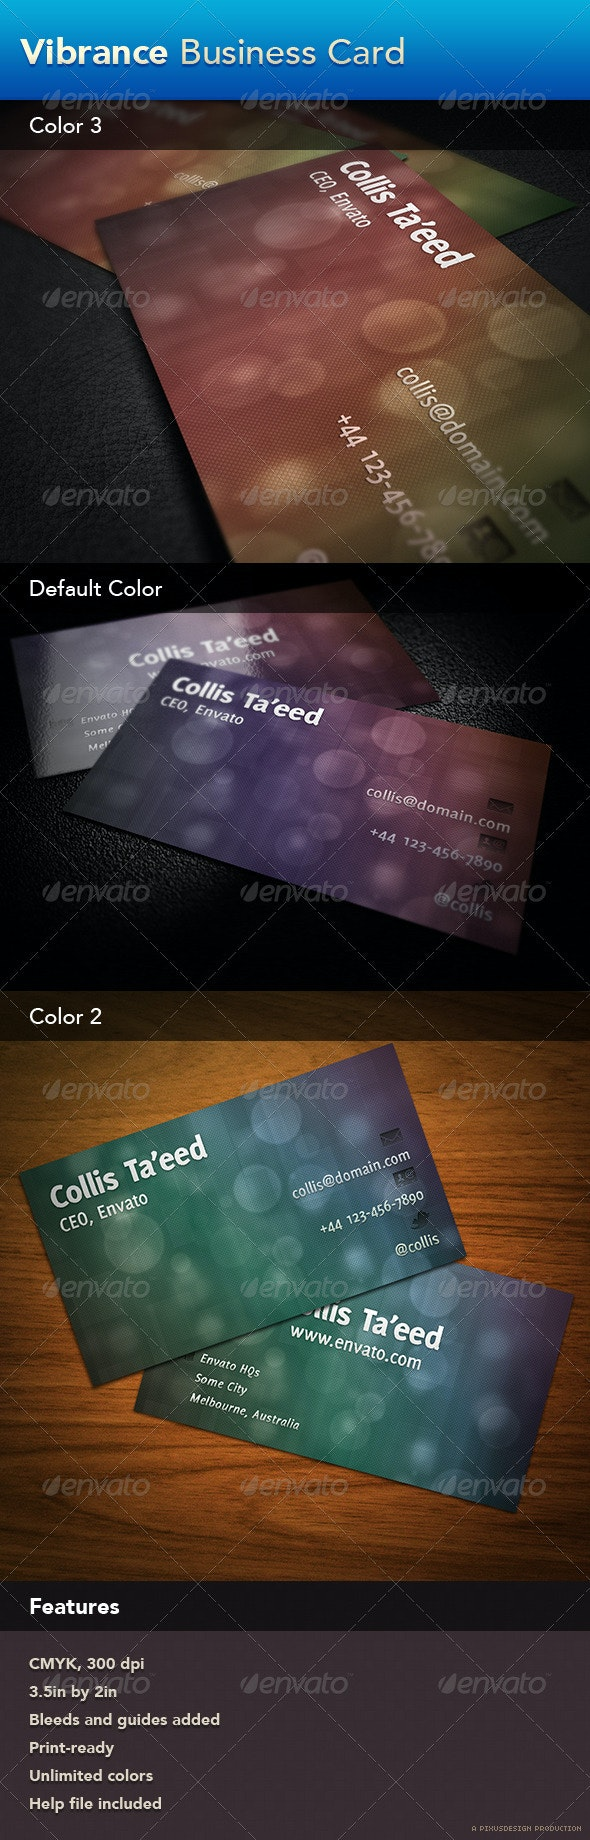 Vibrance Business Card - Corporate Business Cards